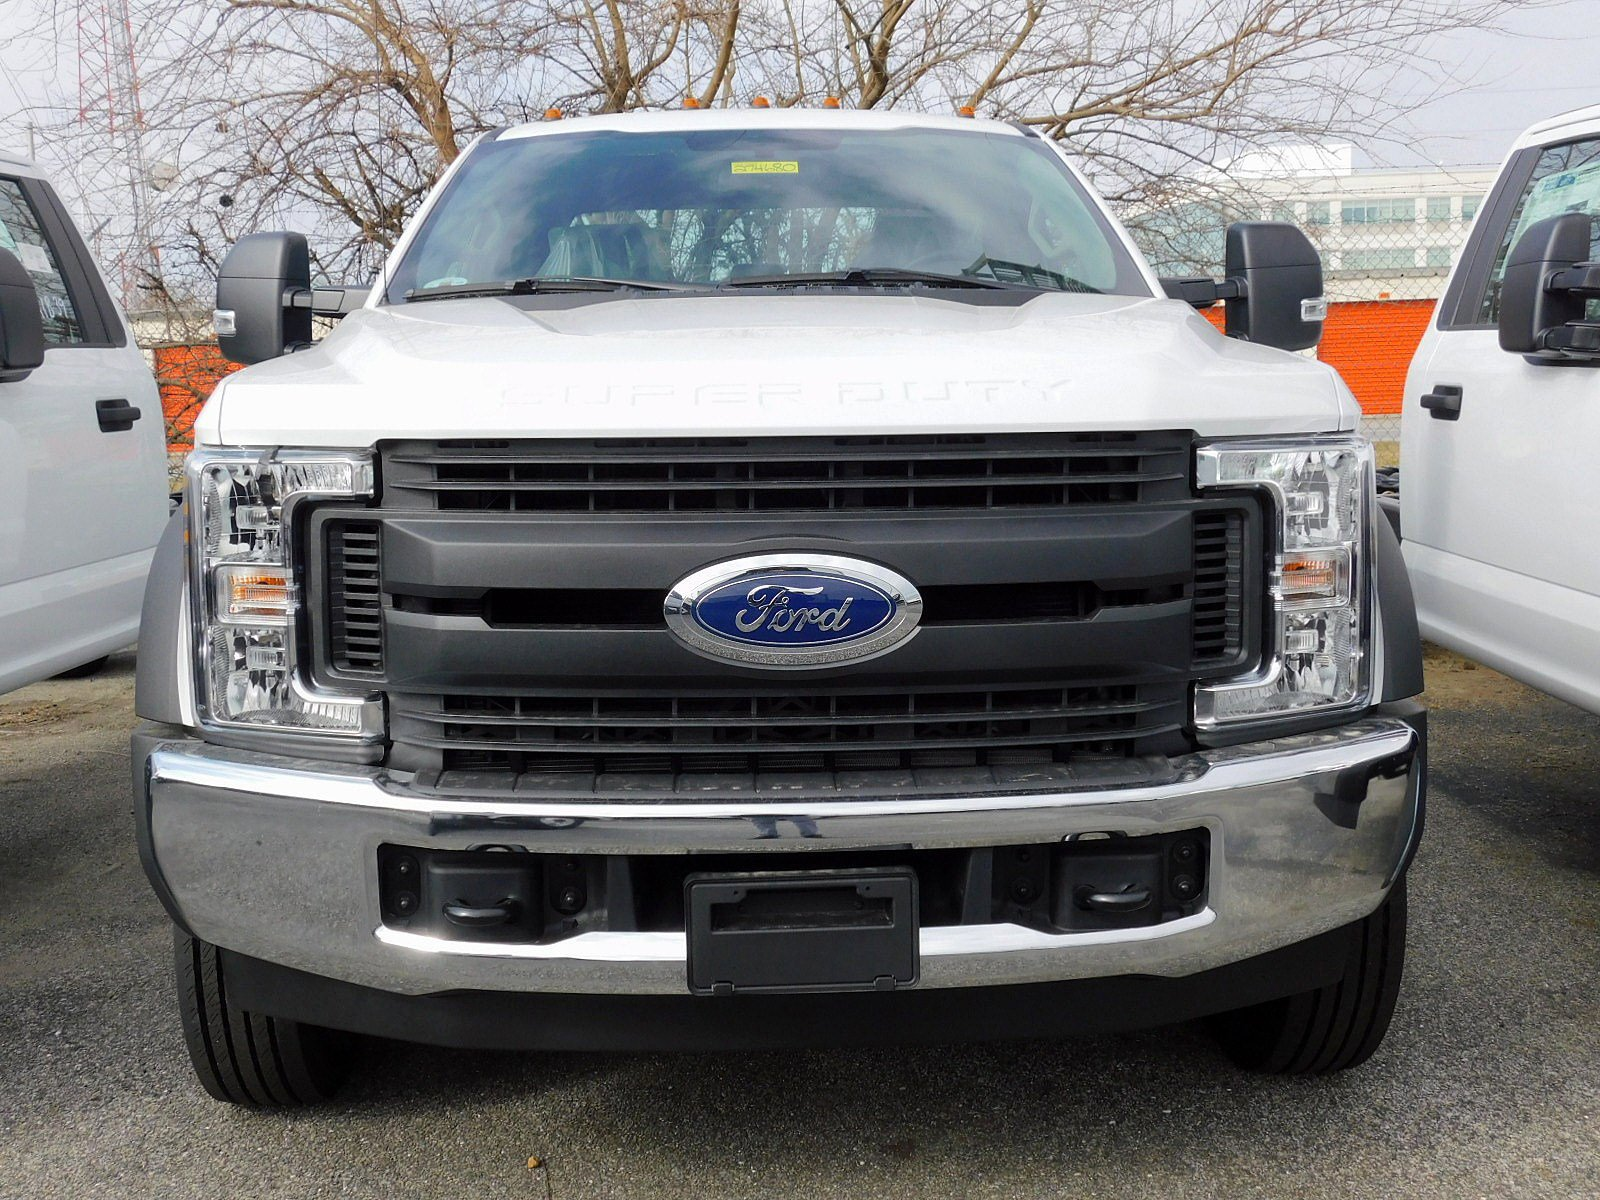 NEW 2019 FORD SUPER DUTY F-550 DRW TRUCK, CAB CHASSIS TRUCK #7010-1